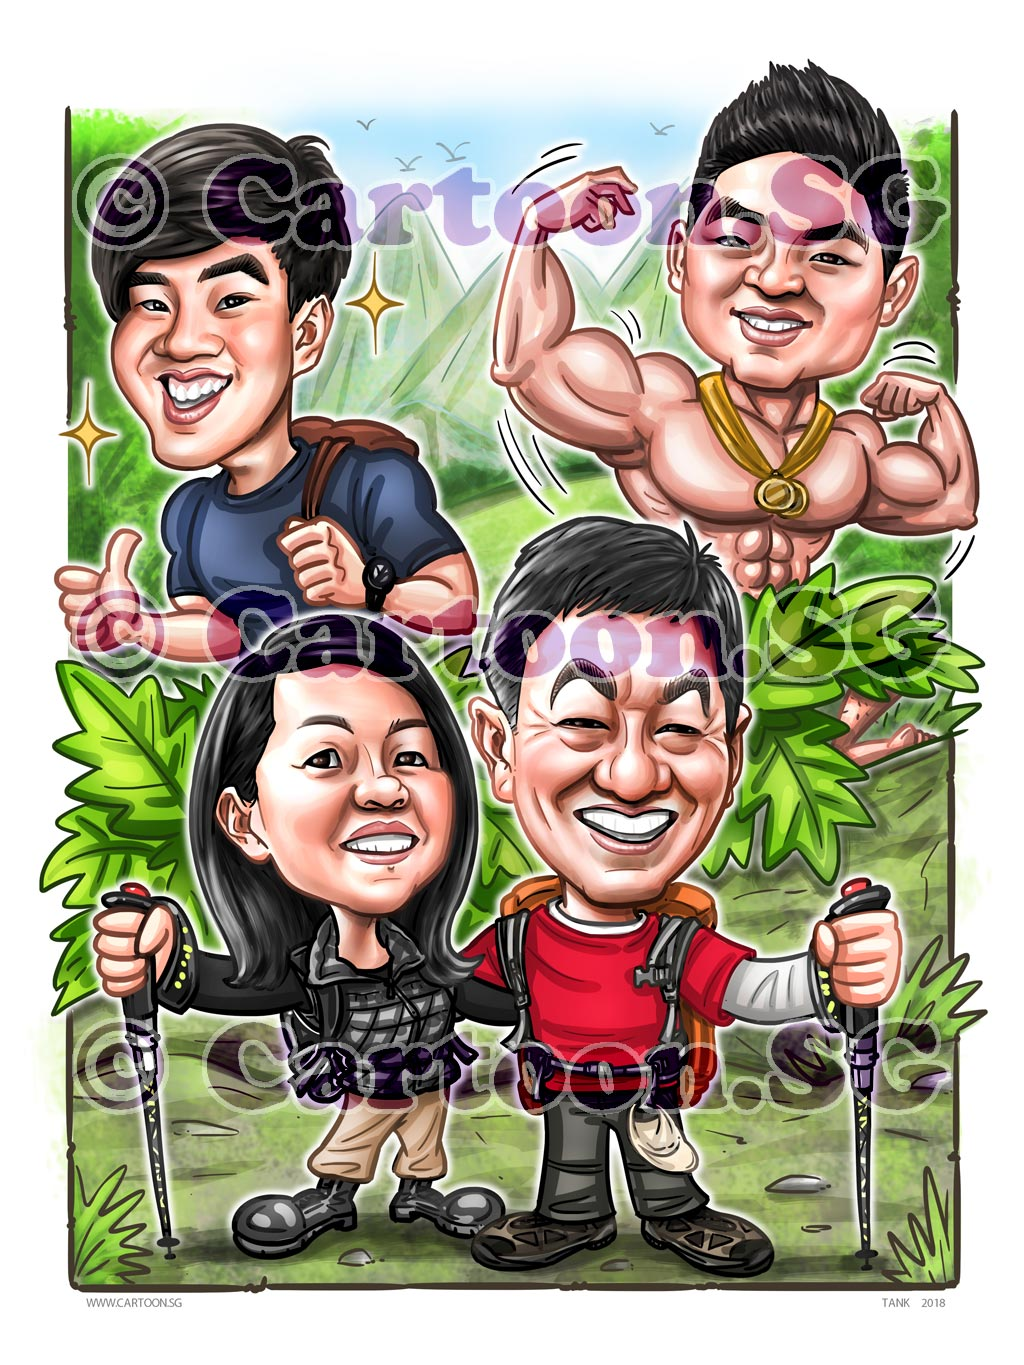 2018-02-08-Caricature-Singapore-digital-family-love-outdoorish-sporty-hiking-muscle-gift.jpg